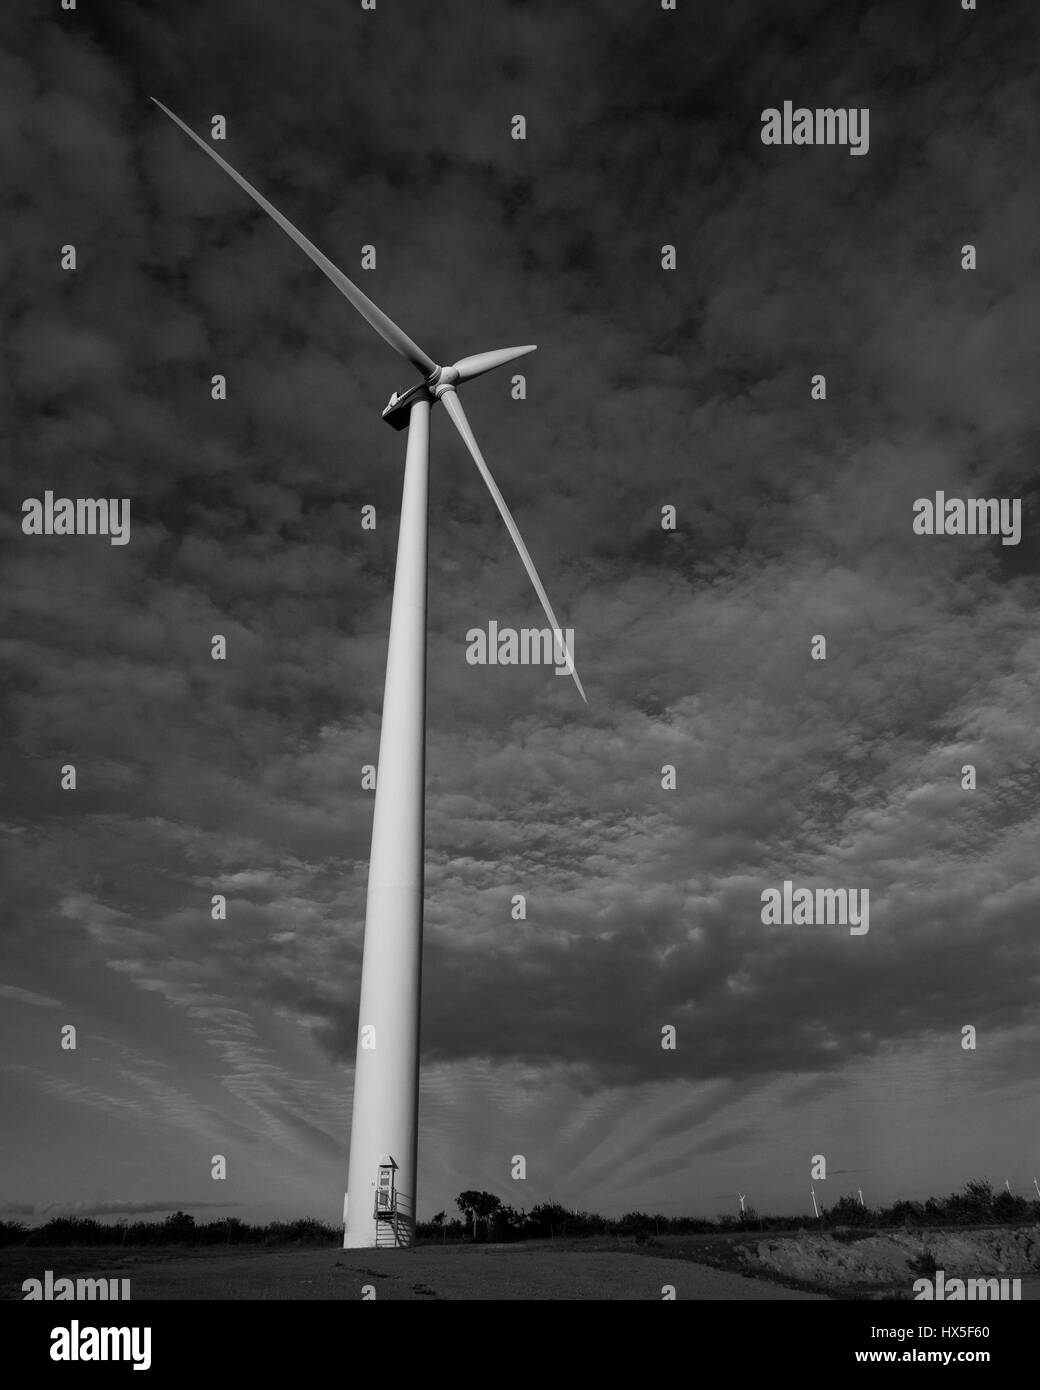 Wind Turbine during cloudy day - Stock Image